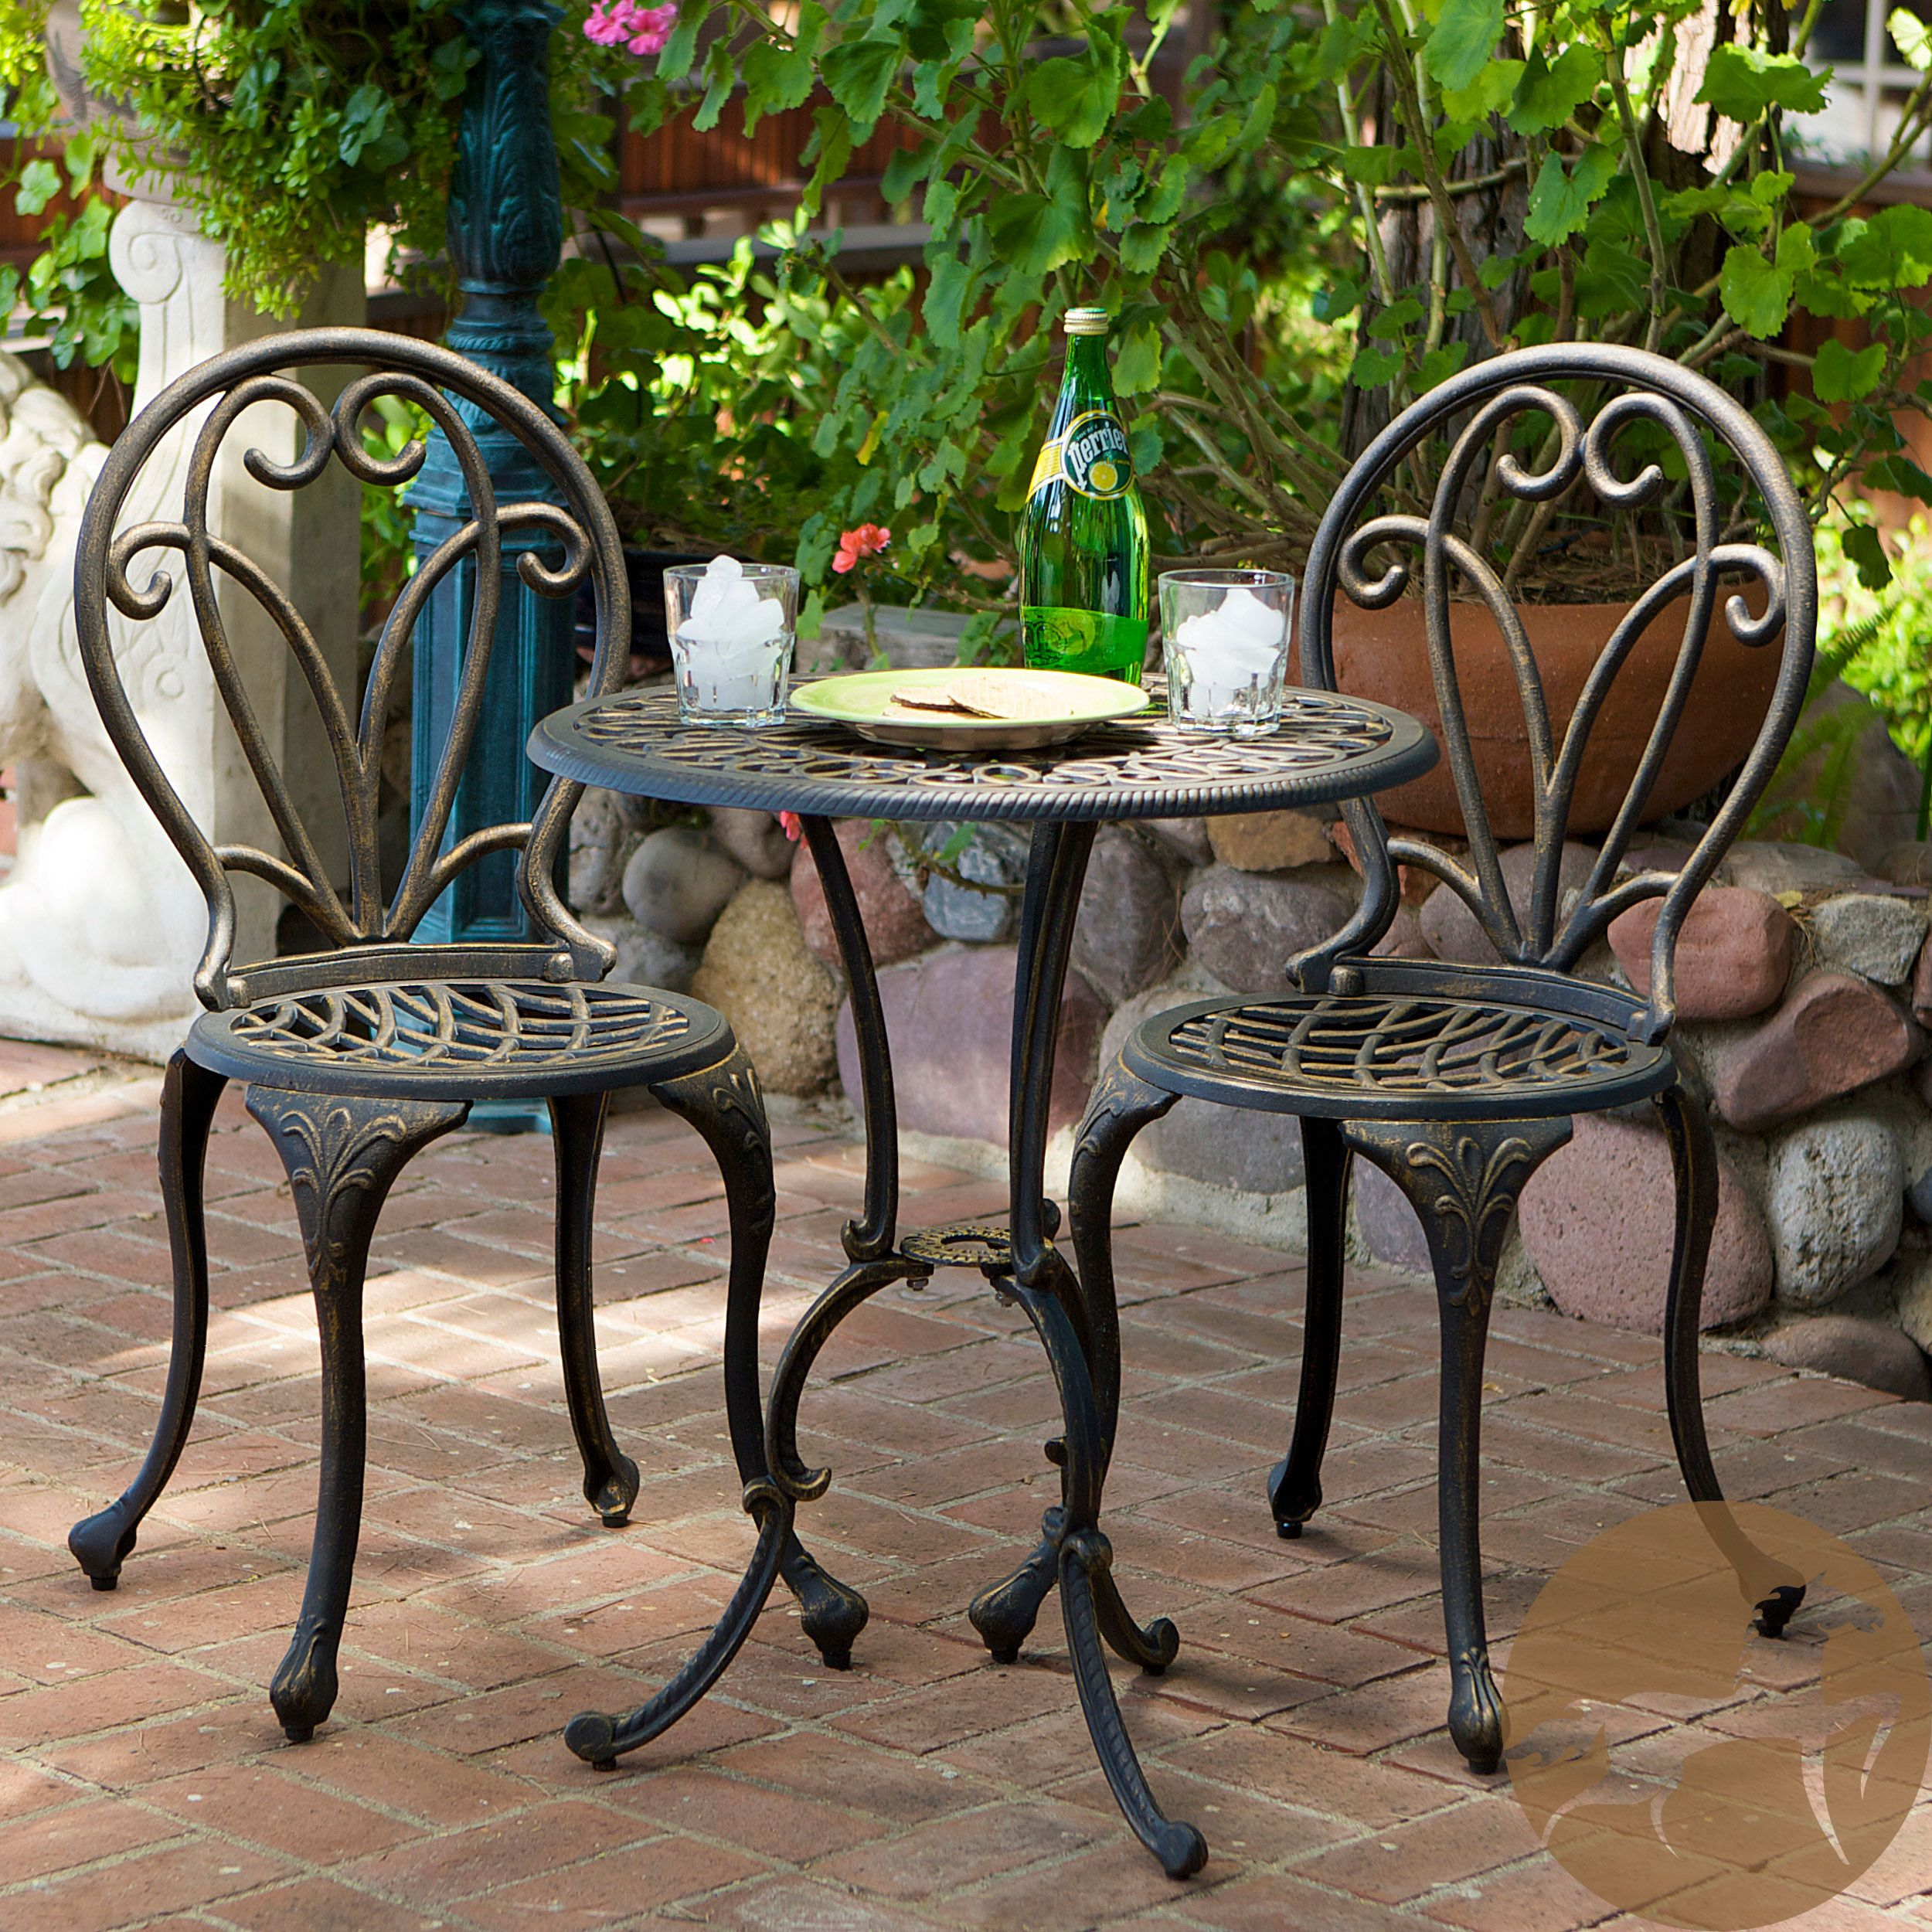 French bistro chairs metal - This French Style Outdoor Bistro Set Will Lend Classy Style To Your Patio The